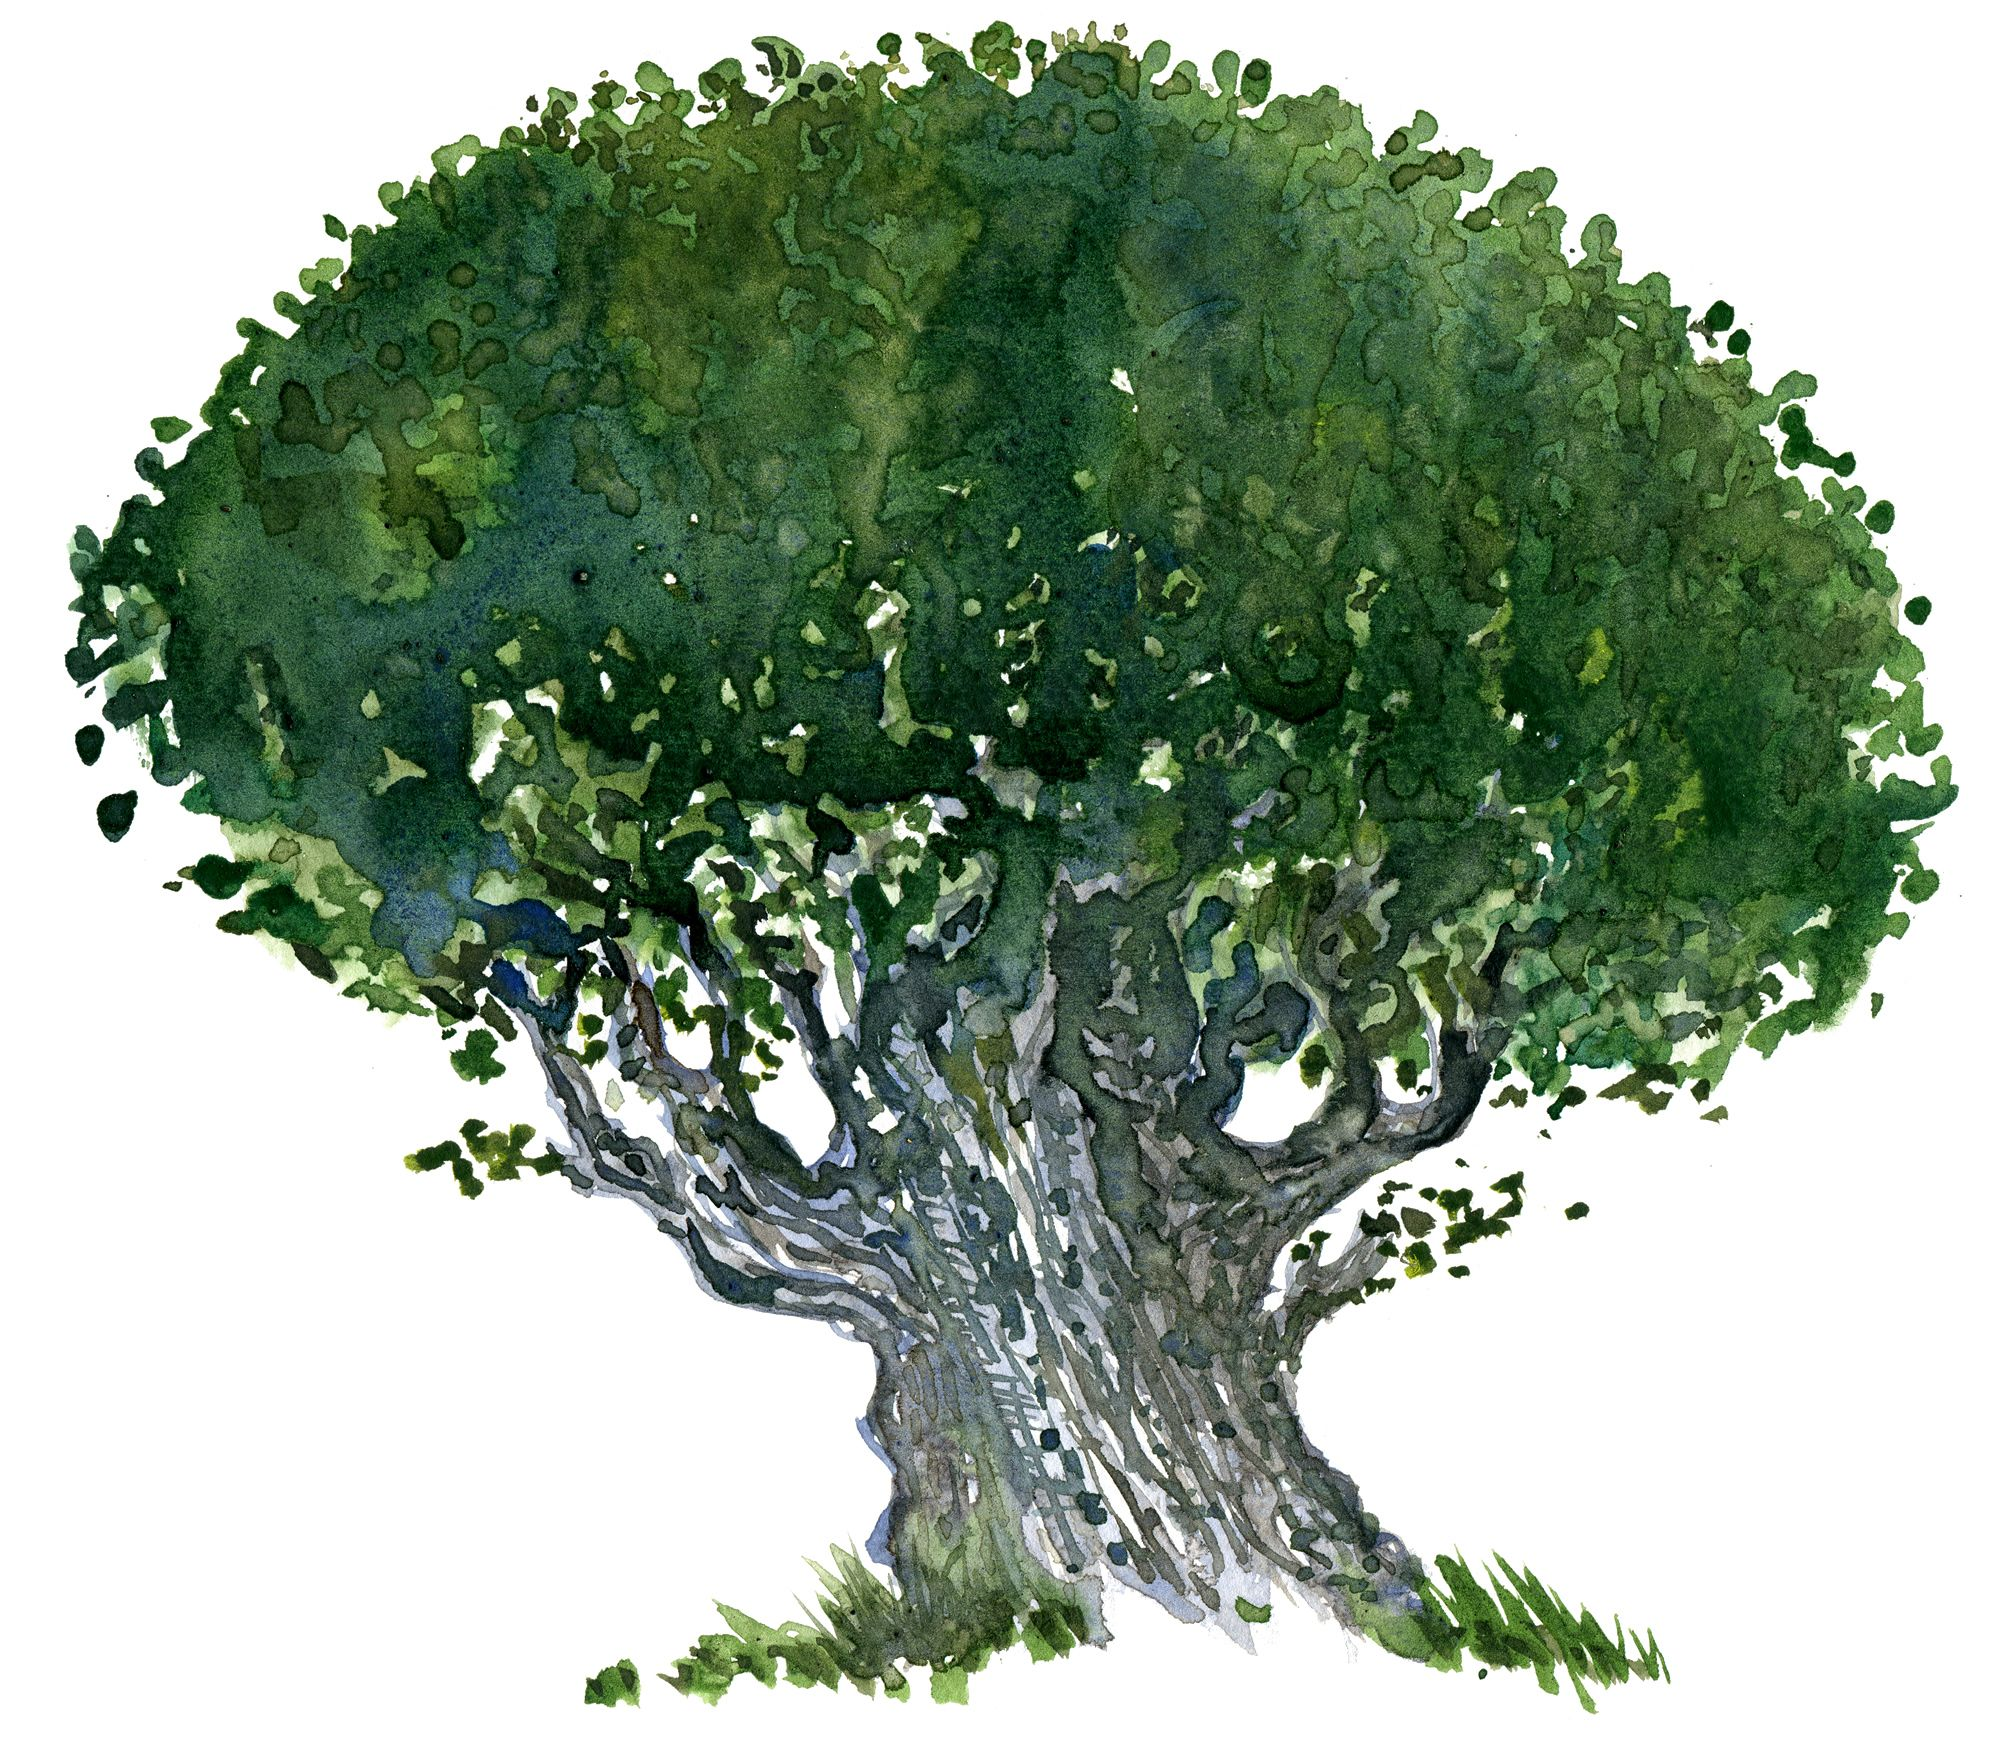 tree drawing images - Google Search | Design - trees and woods ...